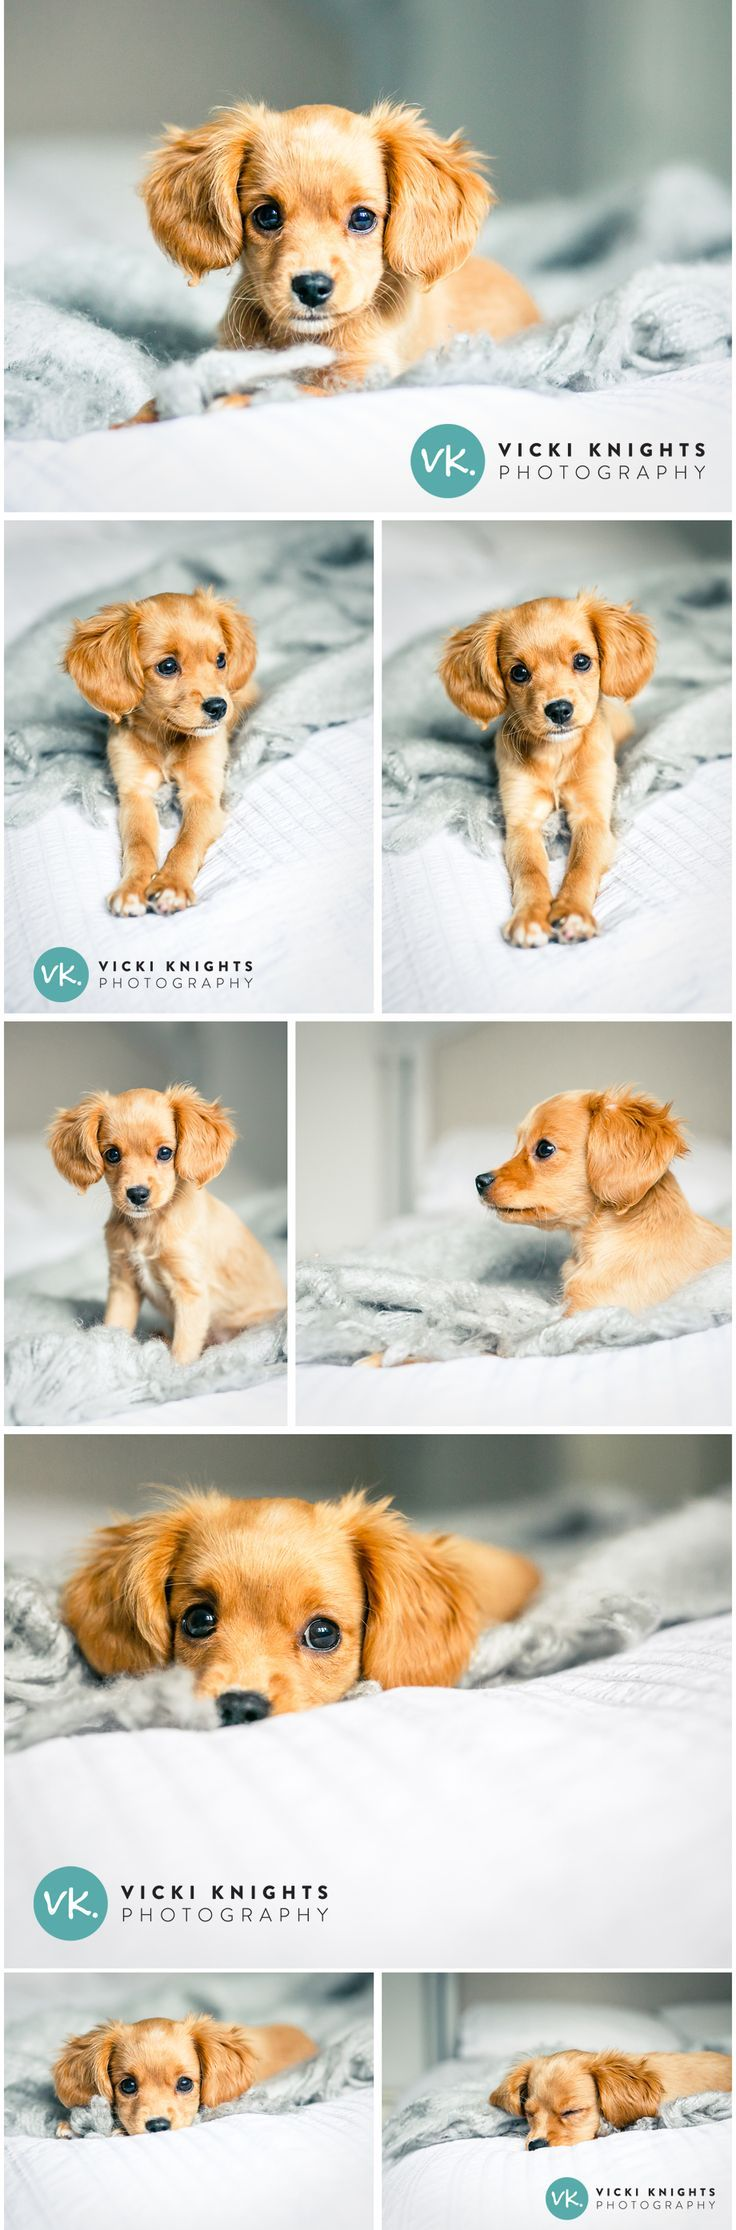 Smooth-coated Cavapoo/Cavoodle #puppy   Vicki Knights Photography #puppyphotography #cavapoo #cavoodle